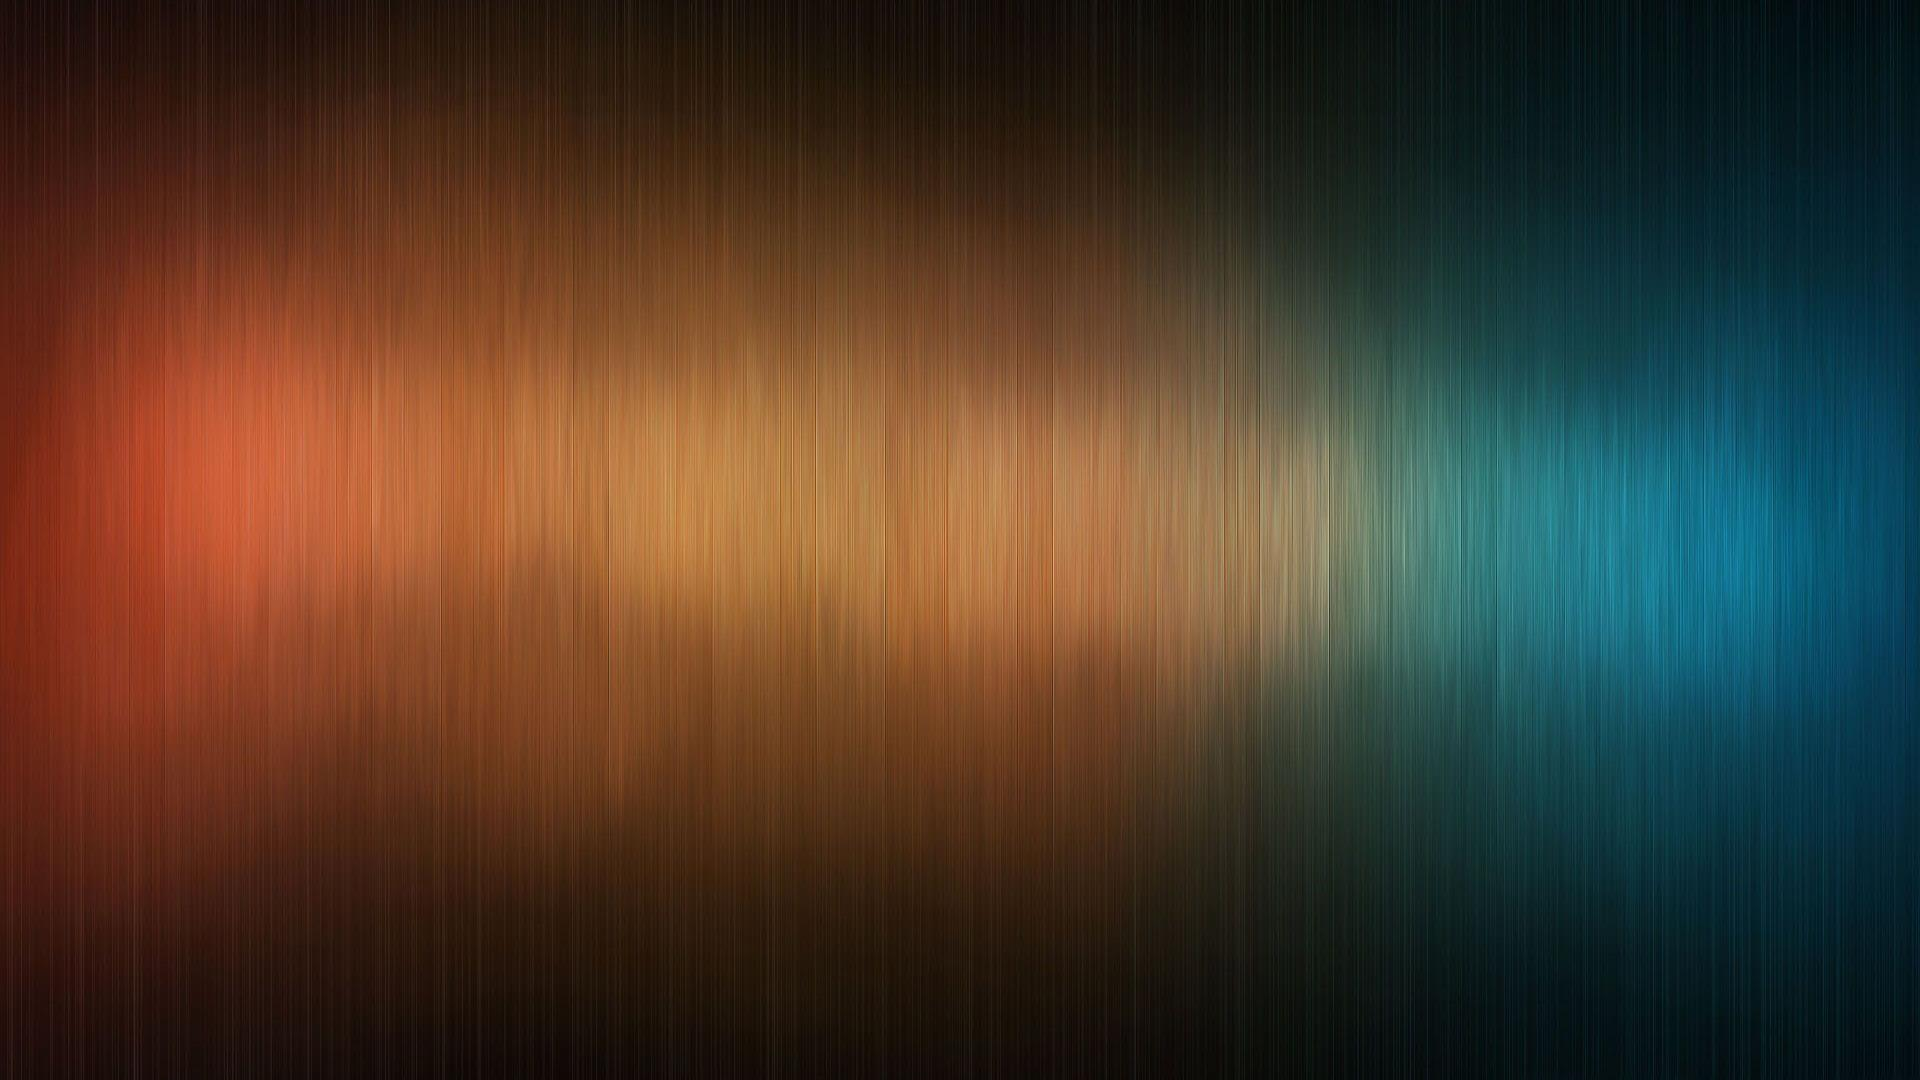 HD-Backgrounds-Wallpapers-6